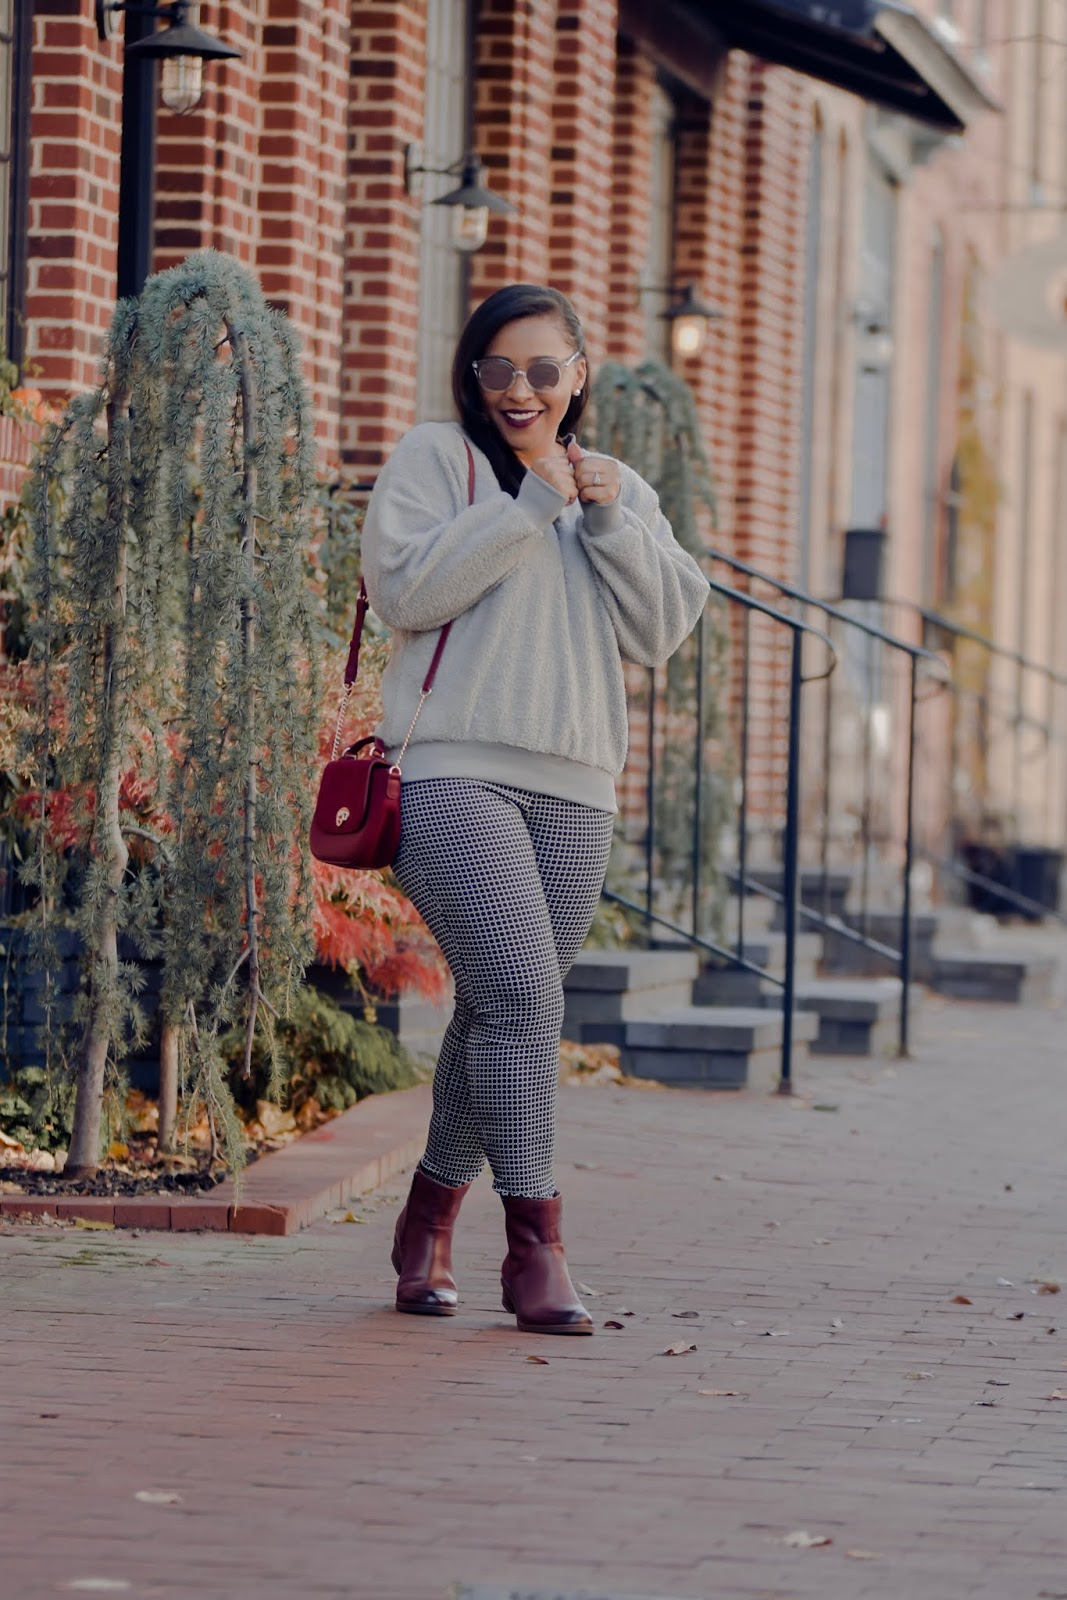 lookbook store, pattys kloset, cozy sweaters, fall sweaters, grey sweaters, fall outfit ideas, affordable sweaters